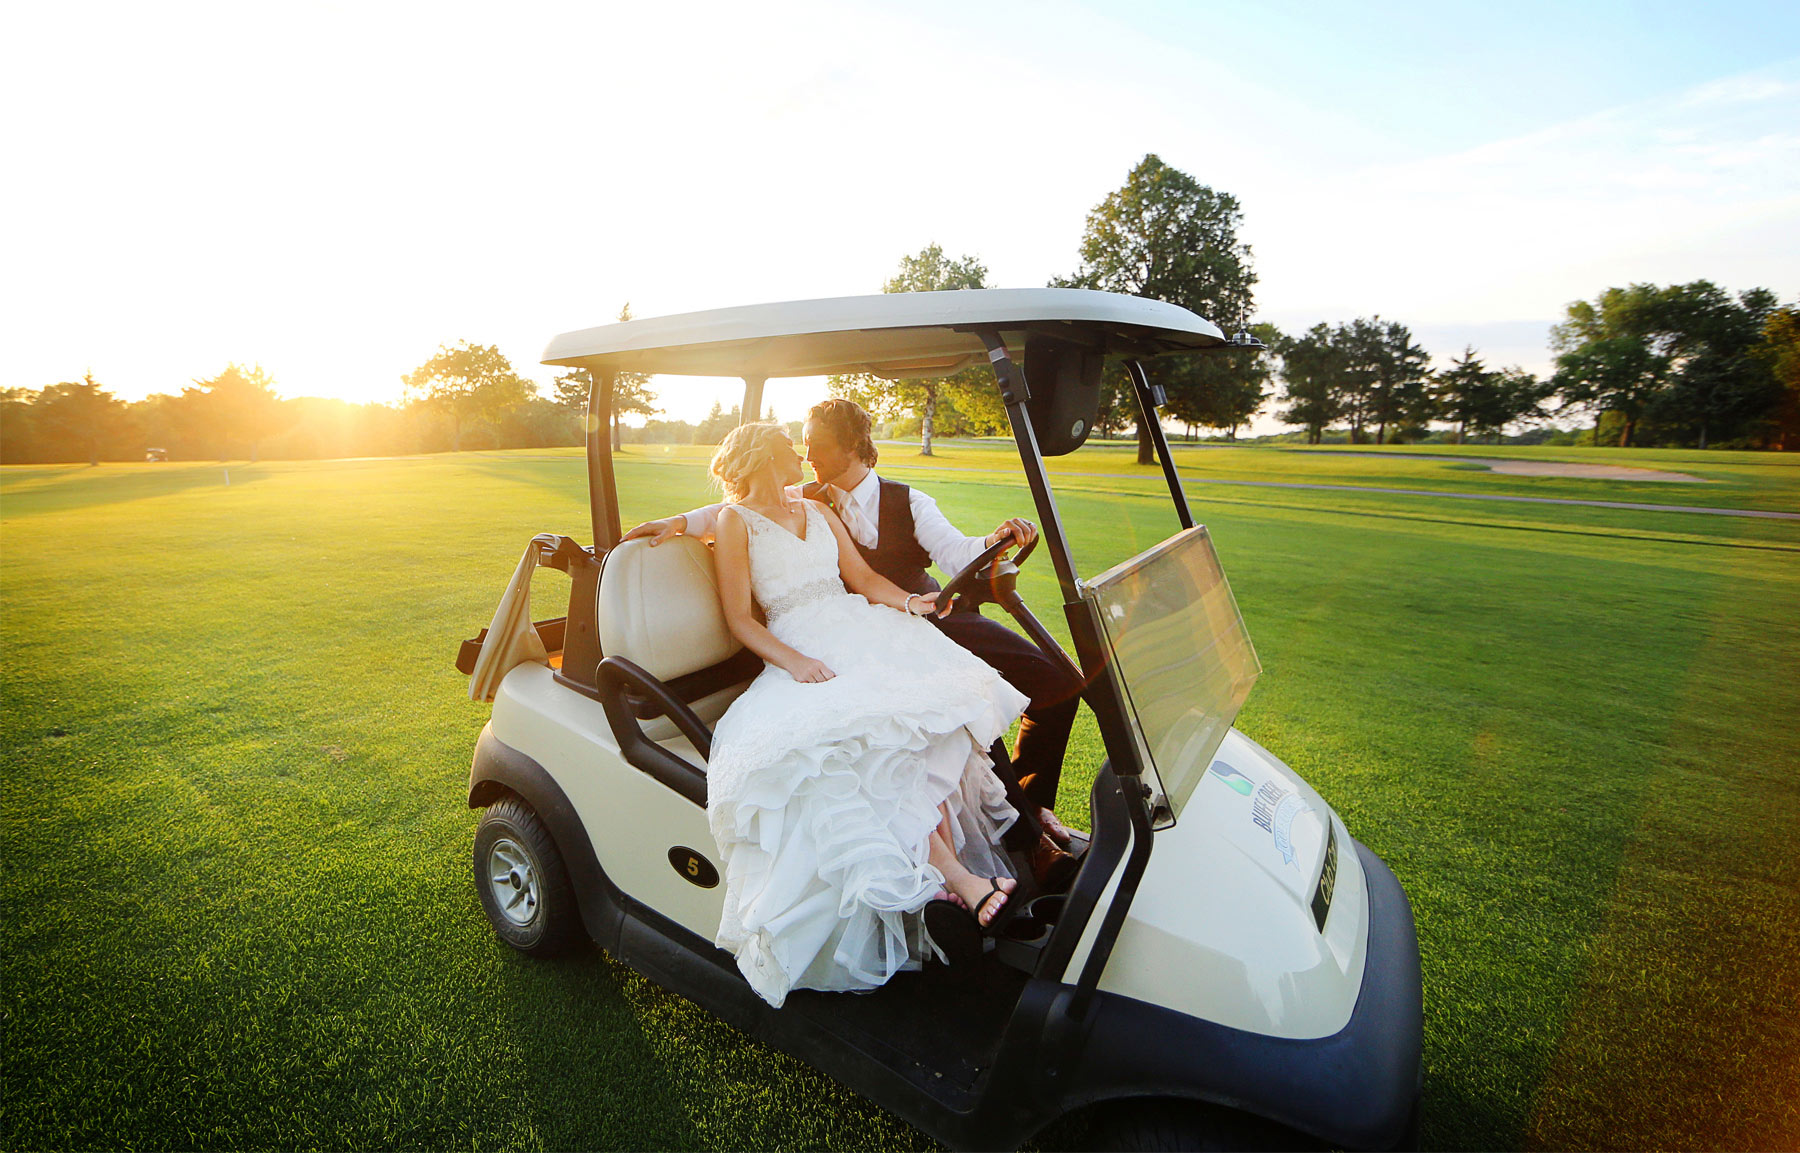 19-Minneapols-Minnesota-Wedding-Photography-by-Vick-Photography--Bluff-Creek-Golf-Club-Reception-Sunset-Golf-Cart-Gretchen-&-Peter.jpg